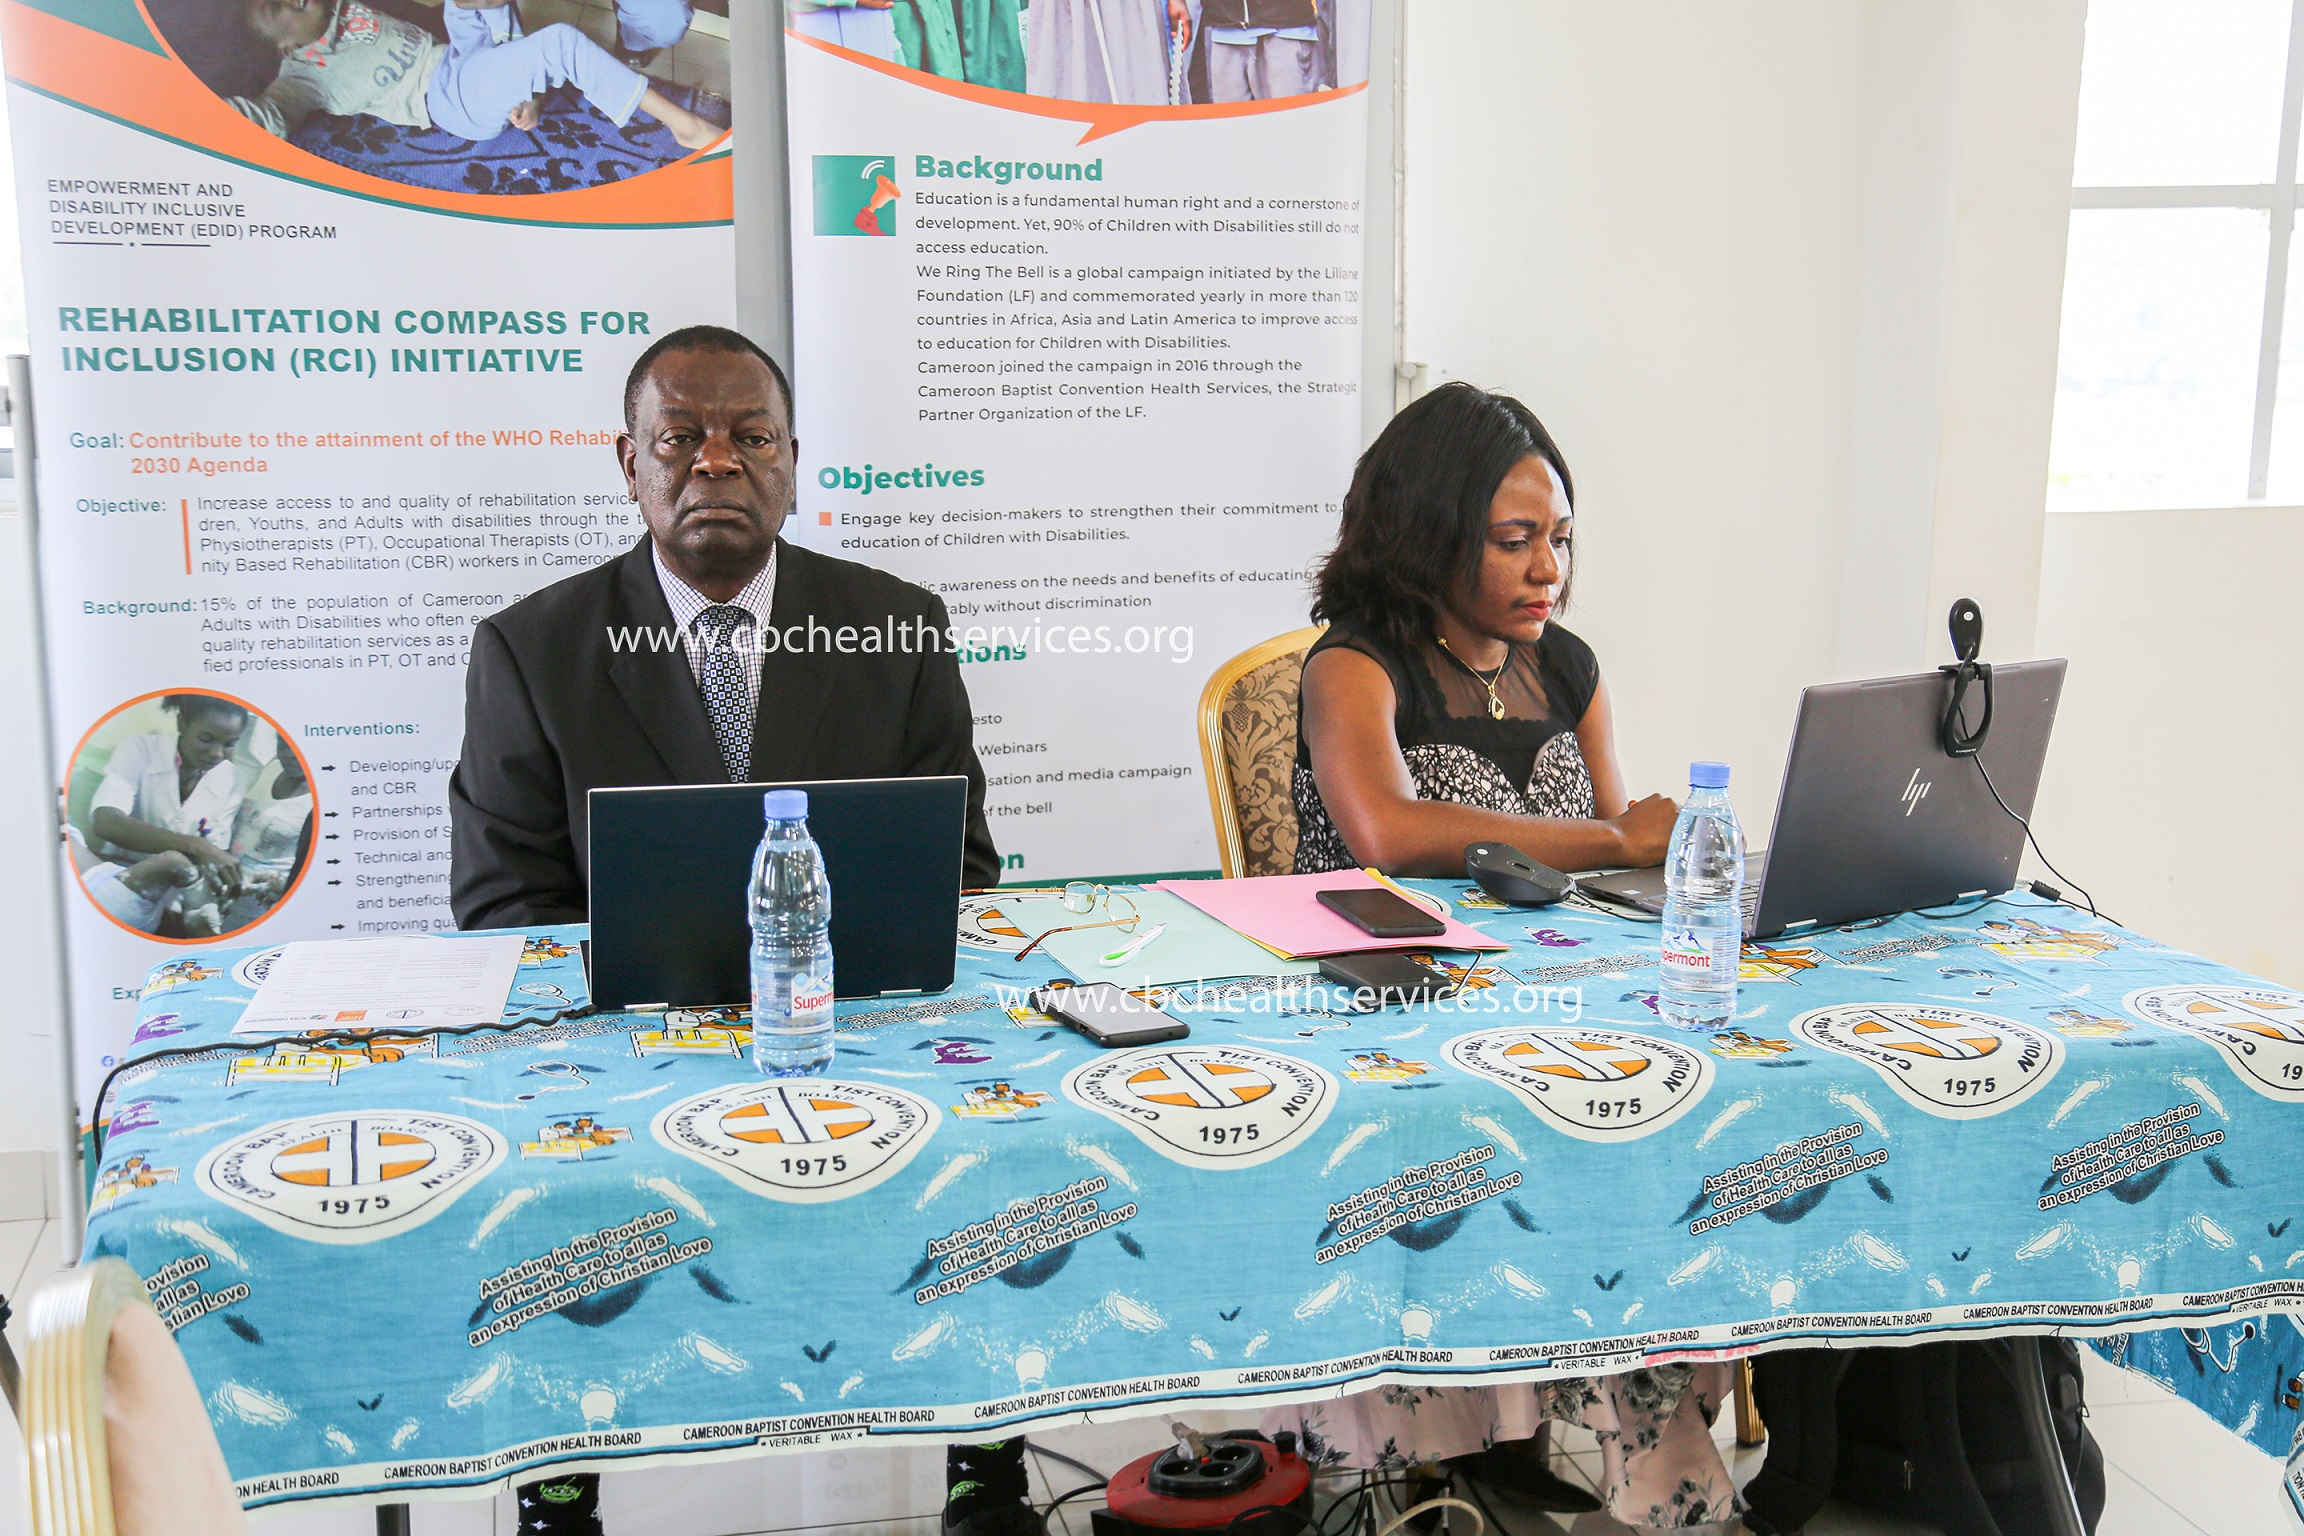 Launching of Rehabilitation Compass for Inclusion Project in Yaounde